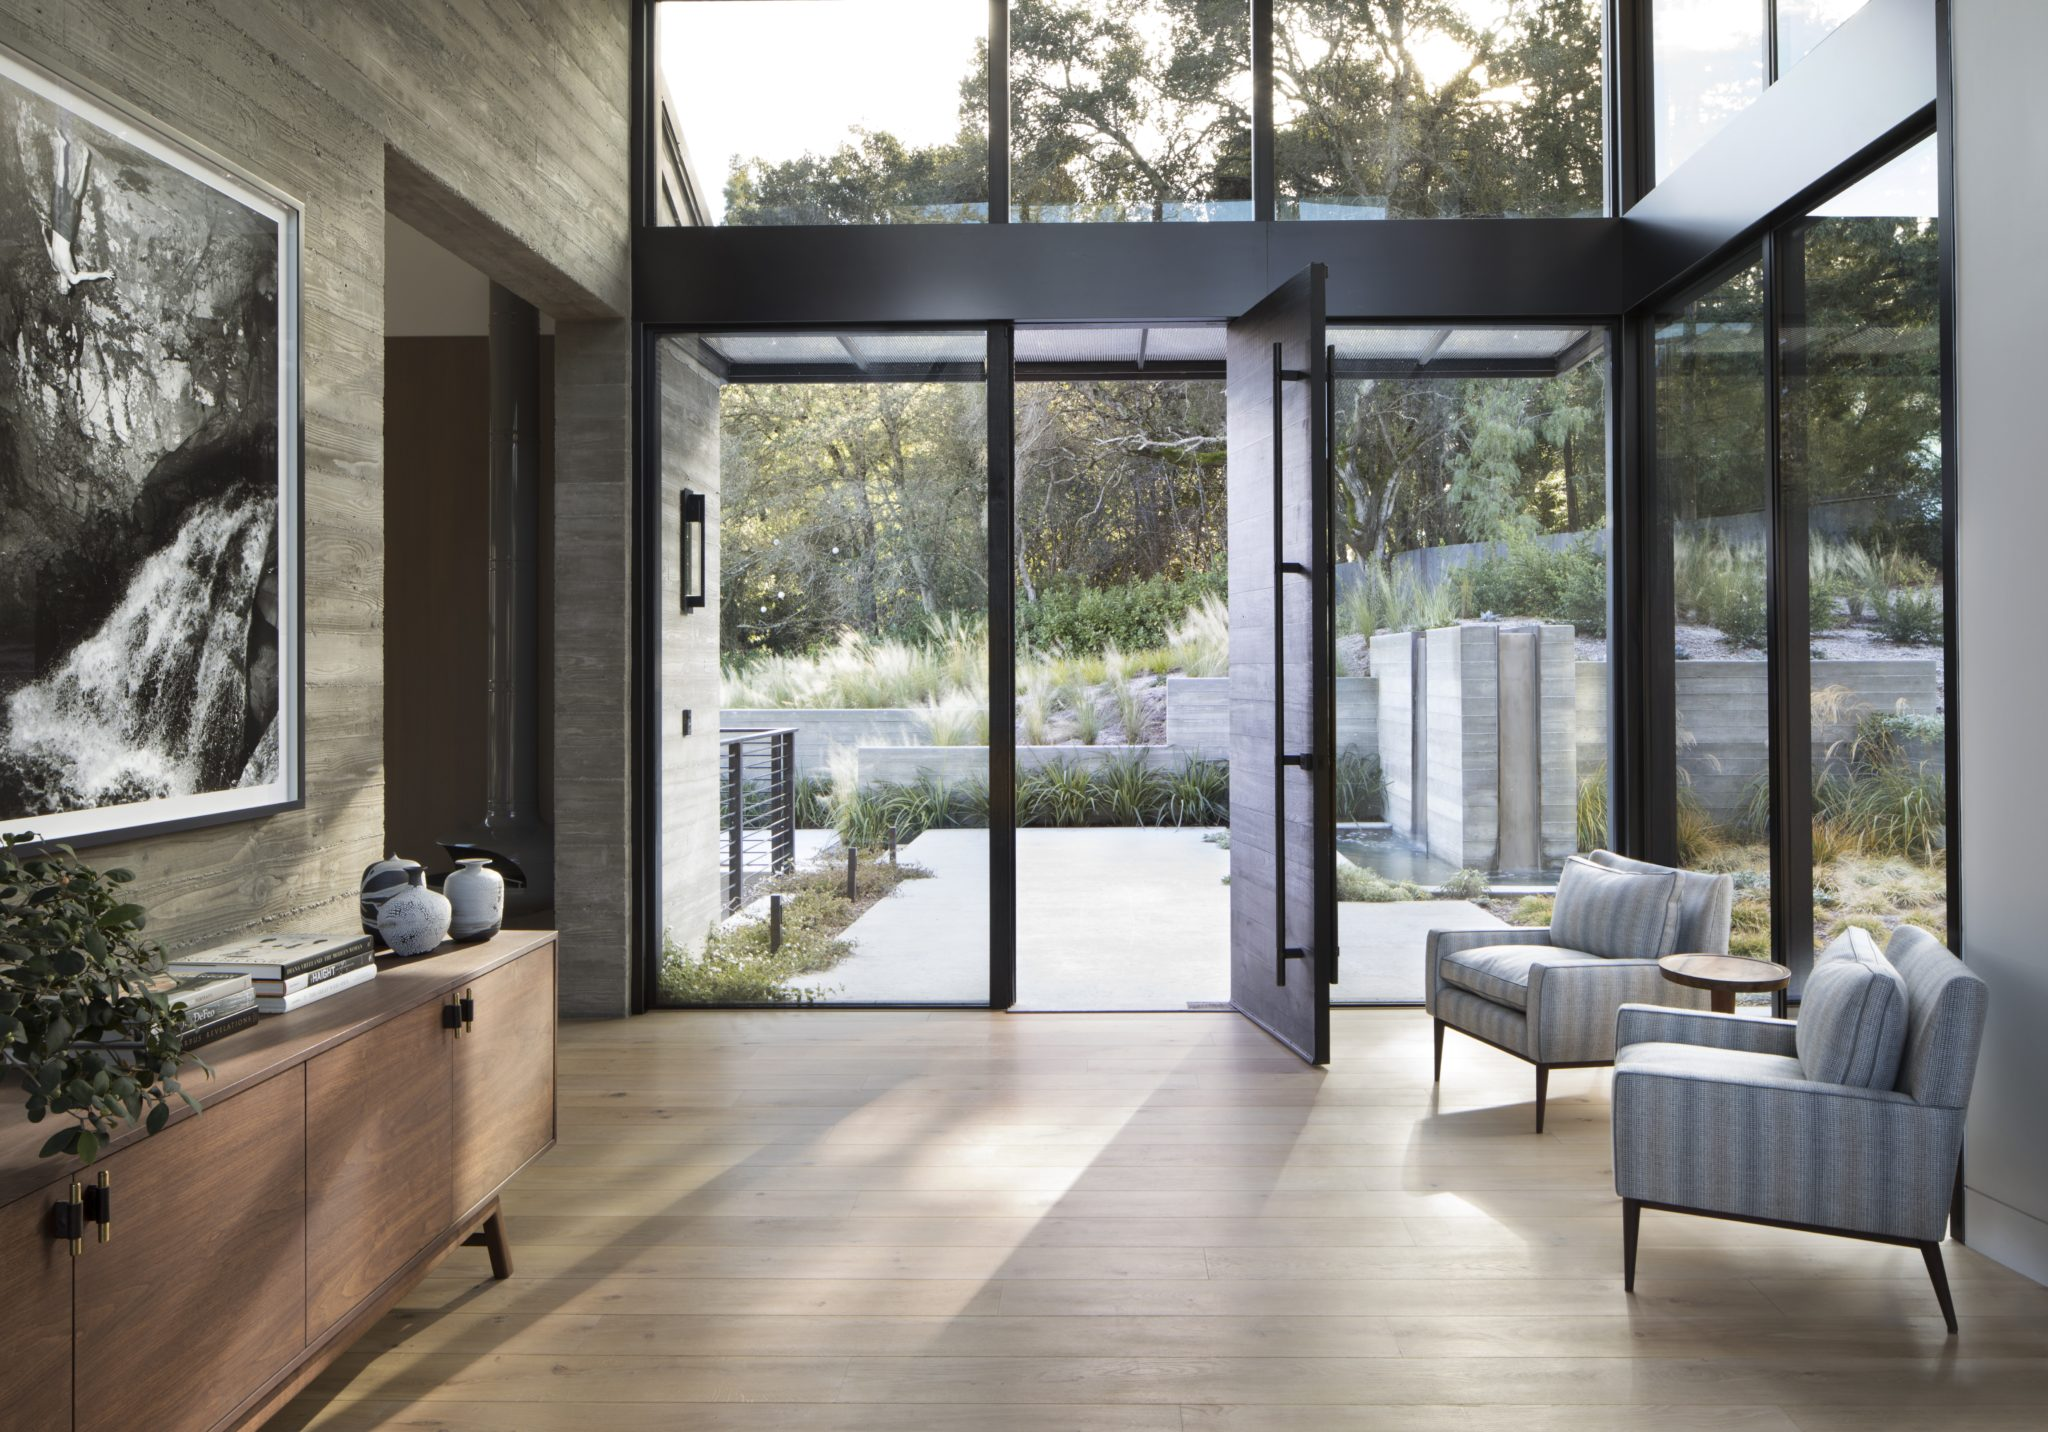 Entrance Hall of a Contemporary Mountain Retreat by Kendall Wilkinson